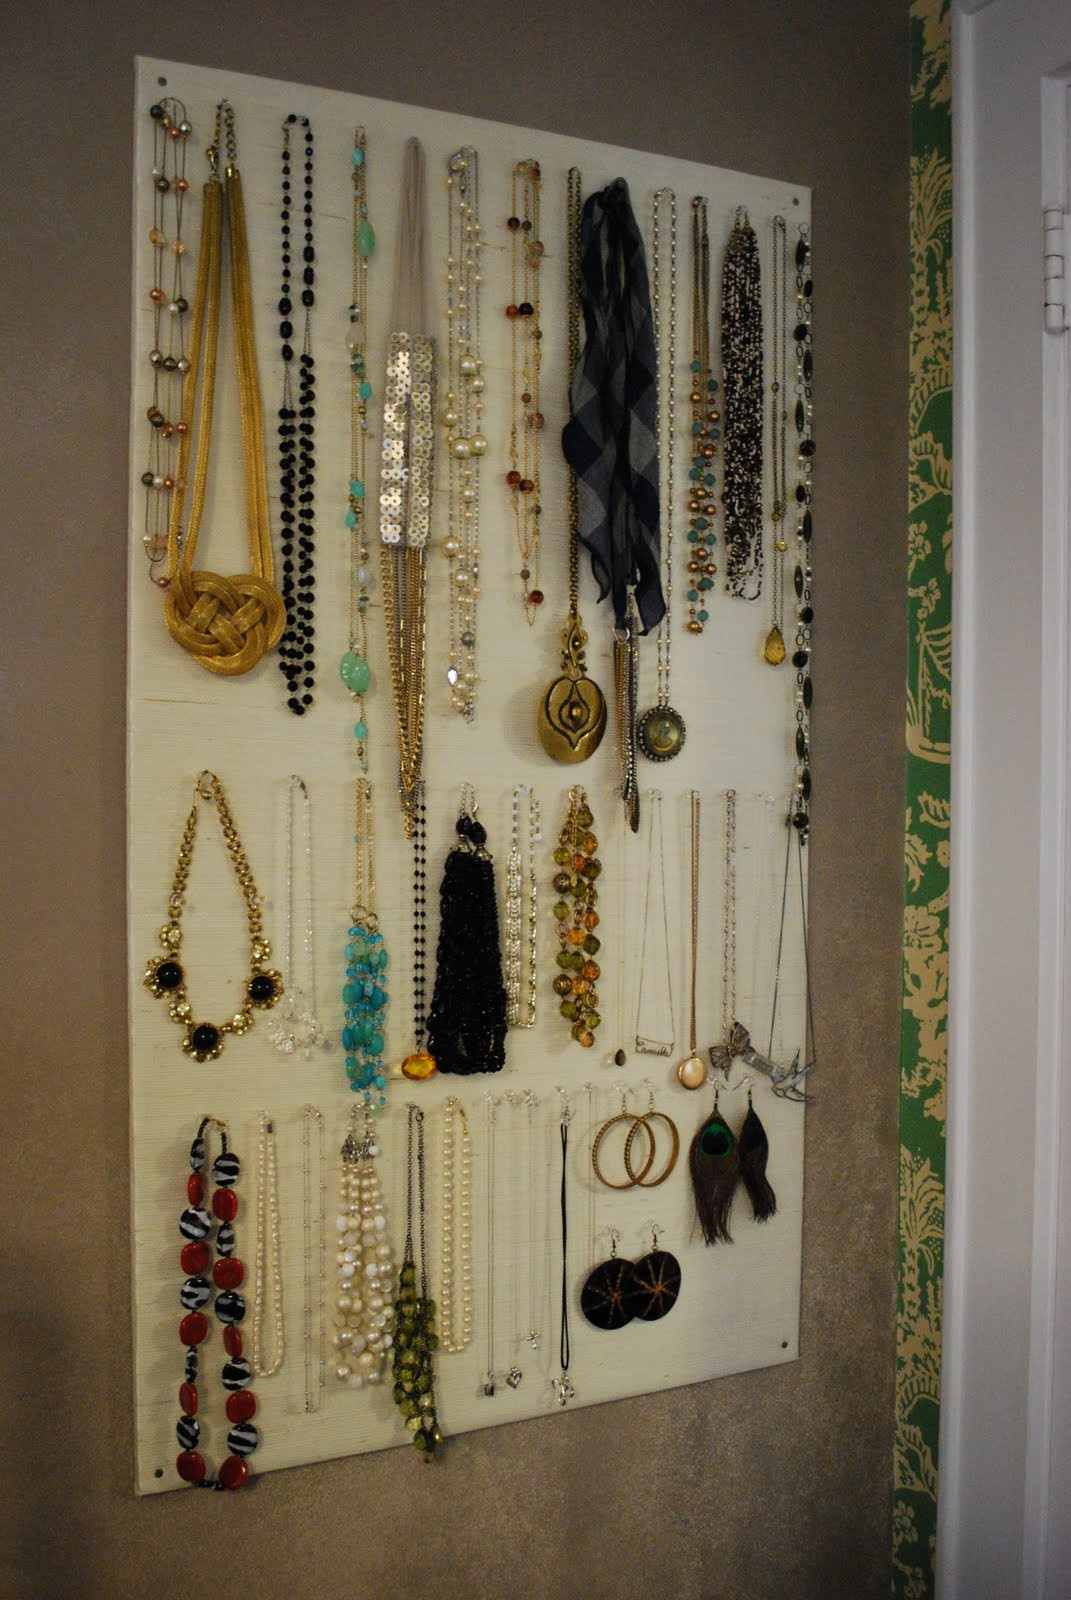 Best ideas about DIY Wall Jewelry Organizer . Save or Pin High Heeled Foot in the Door DIY Homasote Jewelry Organizer Now.